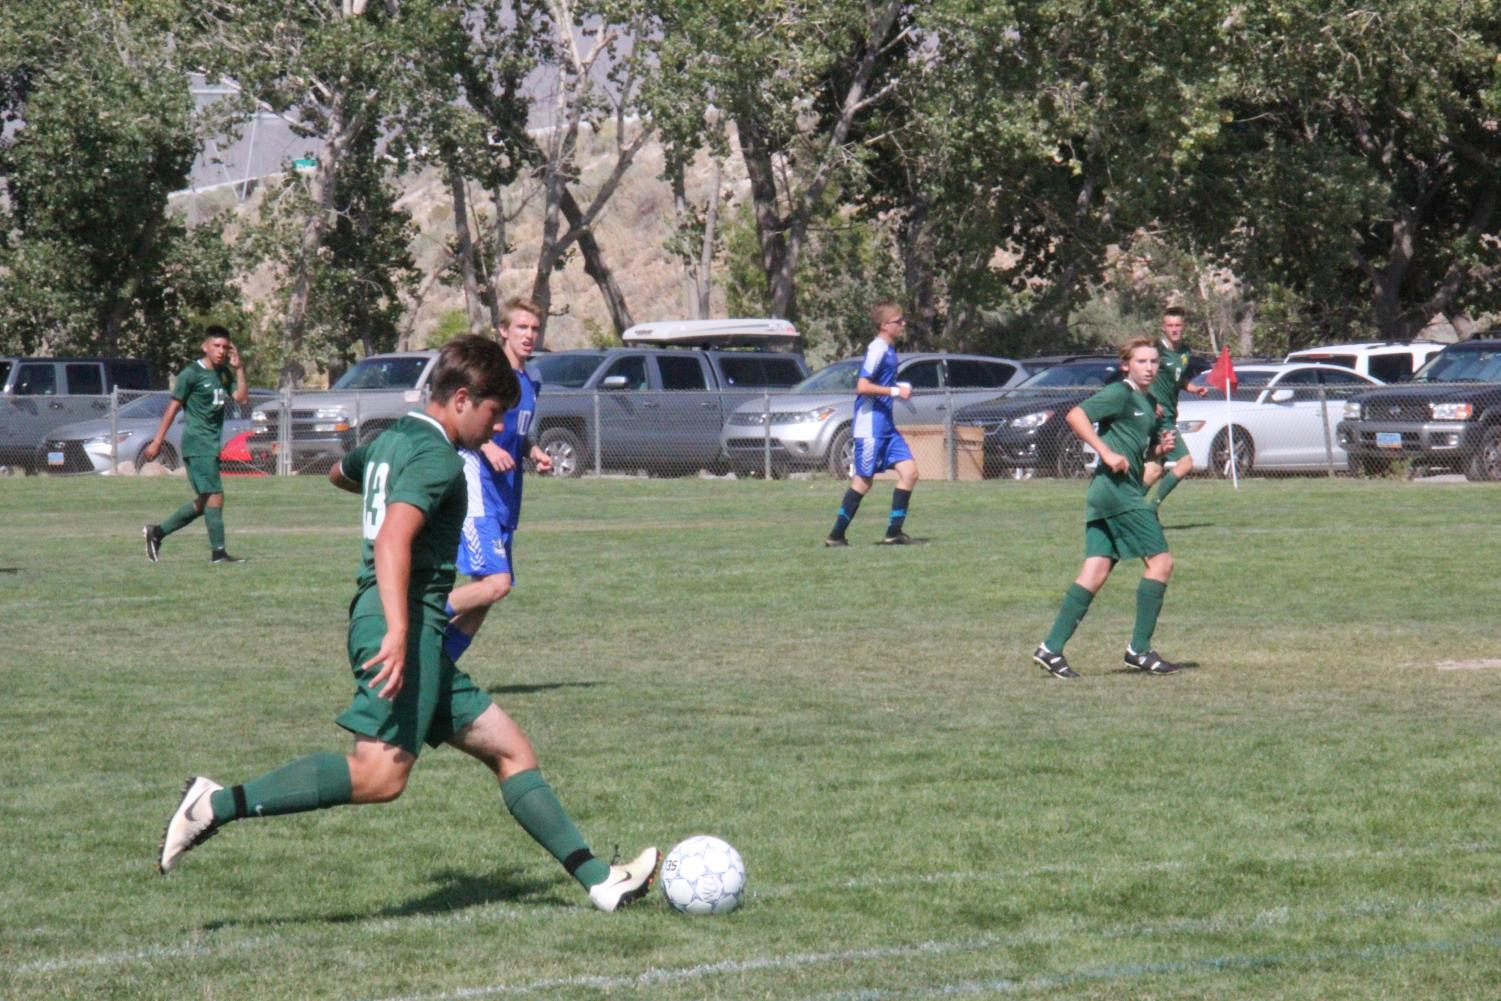 Captain, Benton Acosta, charges with the ball up the field. (Photo courtesy of the Bishop Manogue Yearbook Staff and Jackie Cavilia.)